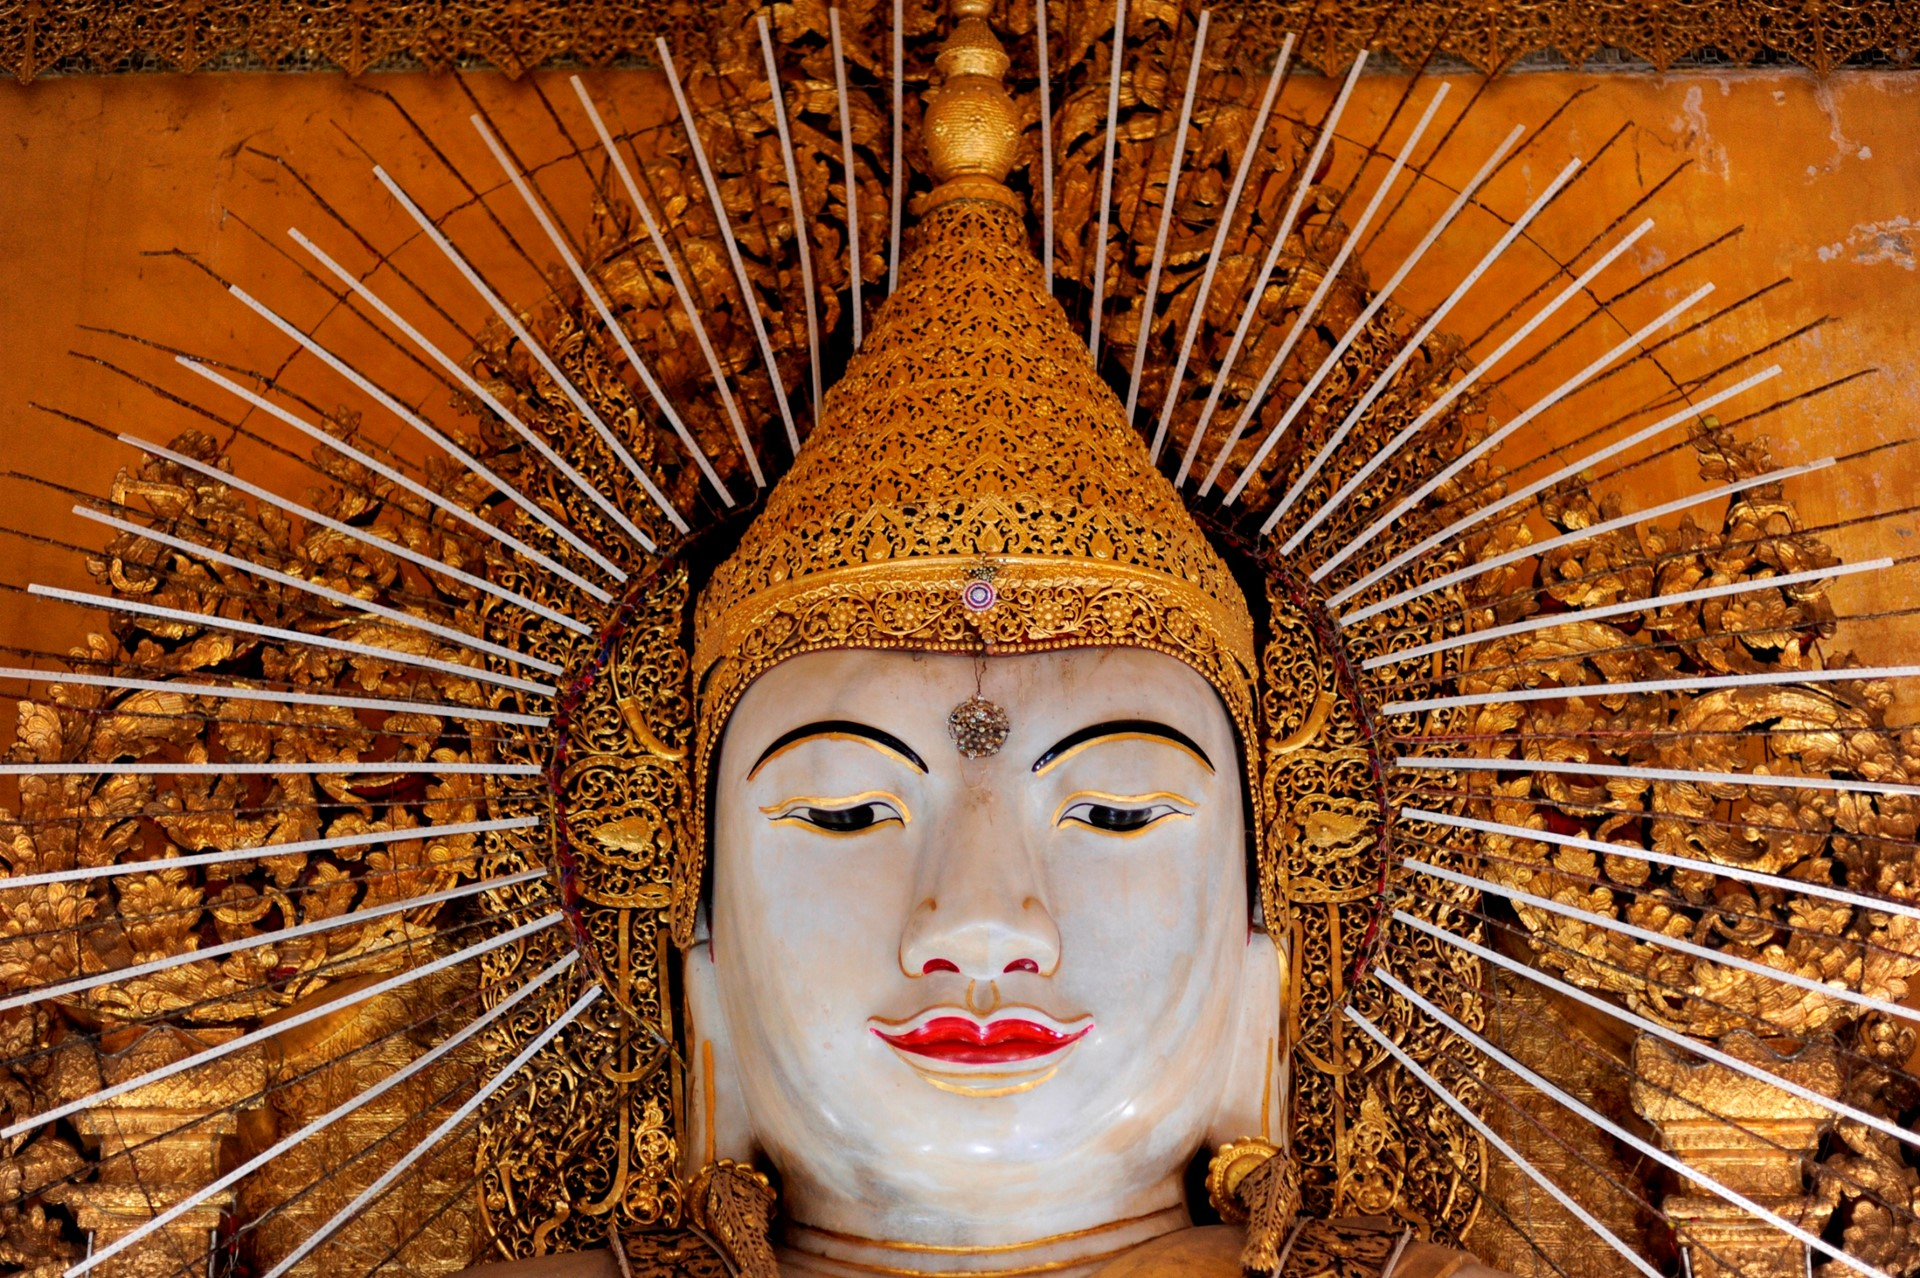 burma religion burma essay This essay will examine the military junta's treatment of monks the roles they occupy are that of the heads of the buddhist religion in burma.